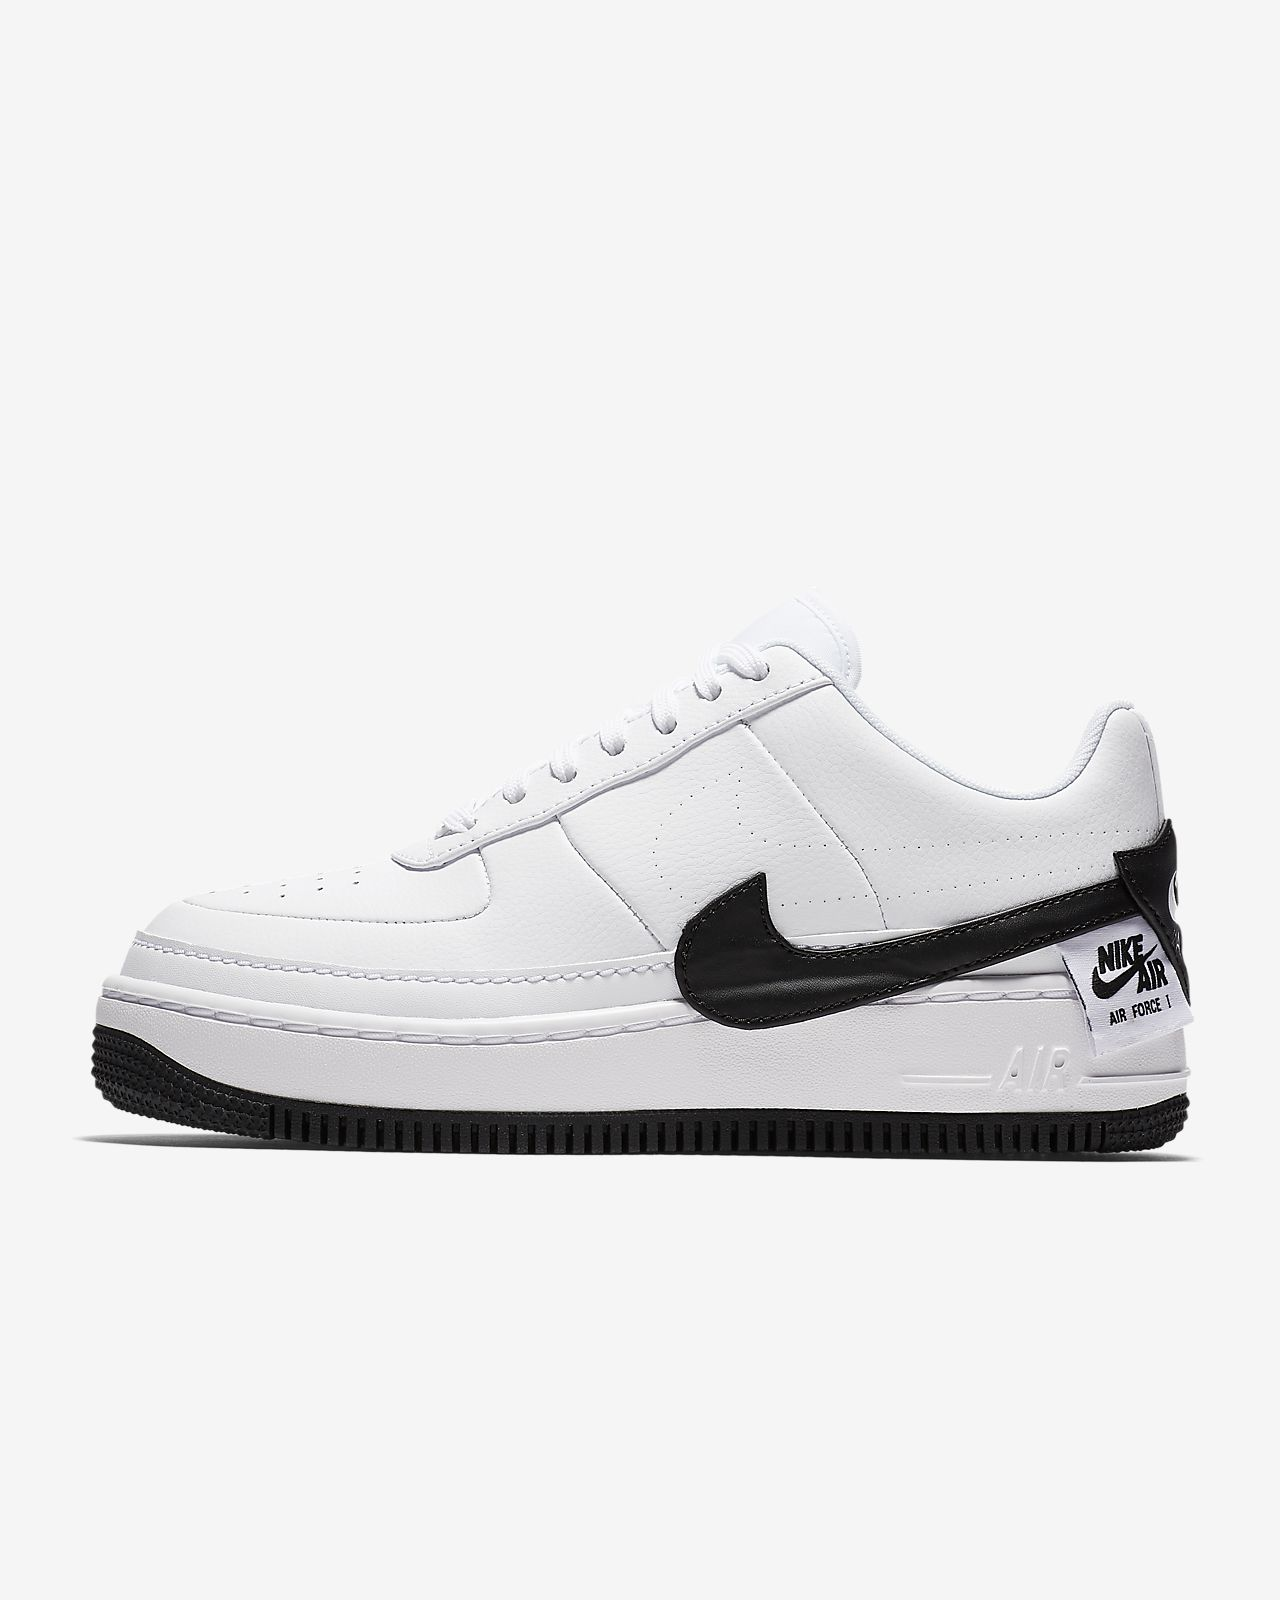 the best attitude 8daaf 7b01c ... Chaussure Nike Air Force 1 Jester XX pour Femme